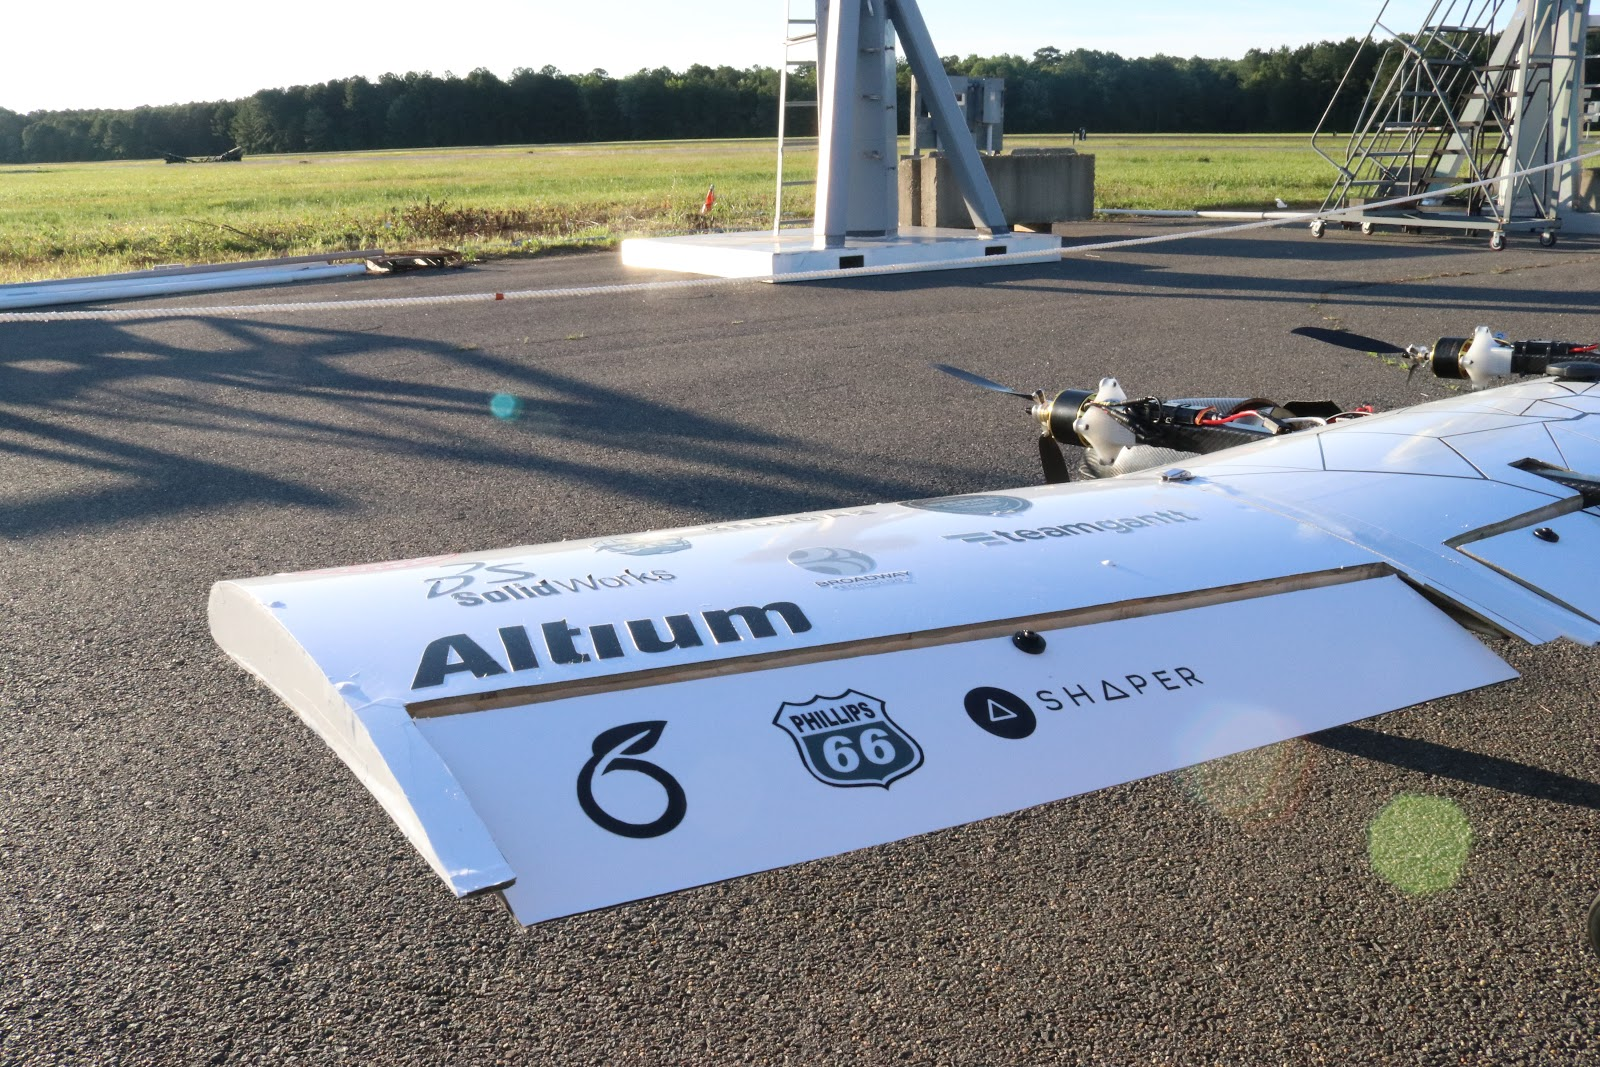 CUAir_Overleaf 'O' logo on wing of CUAir unmanned aircraft